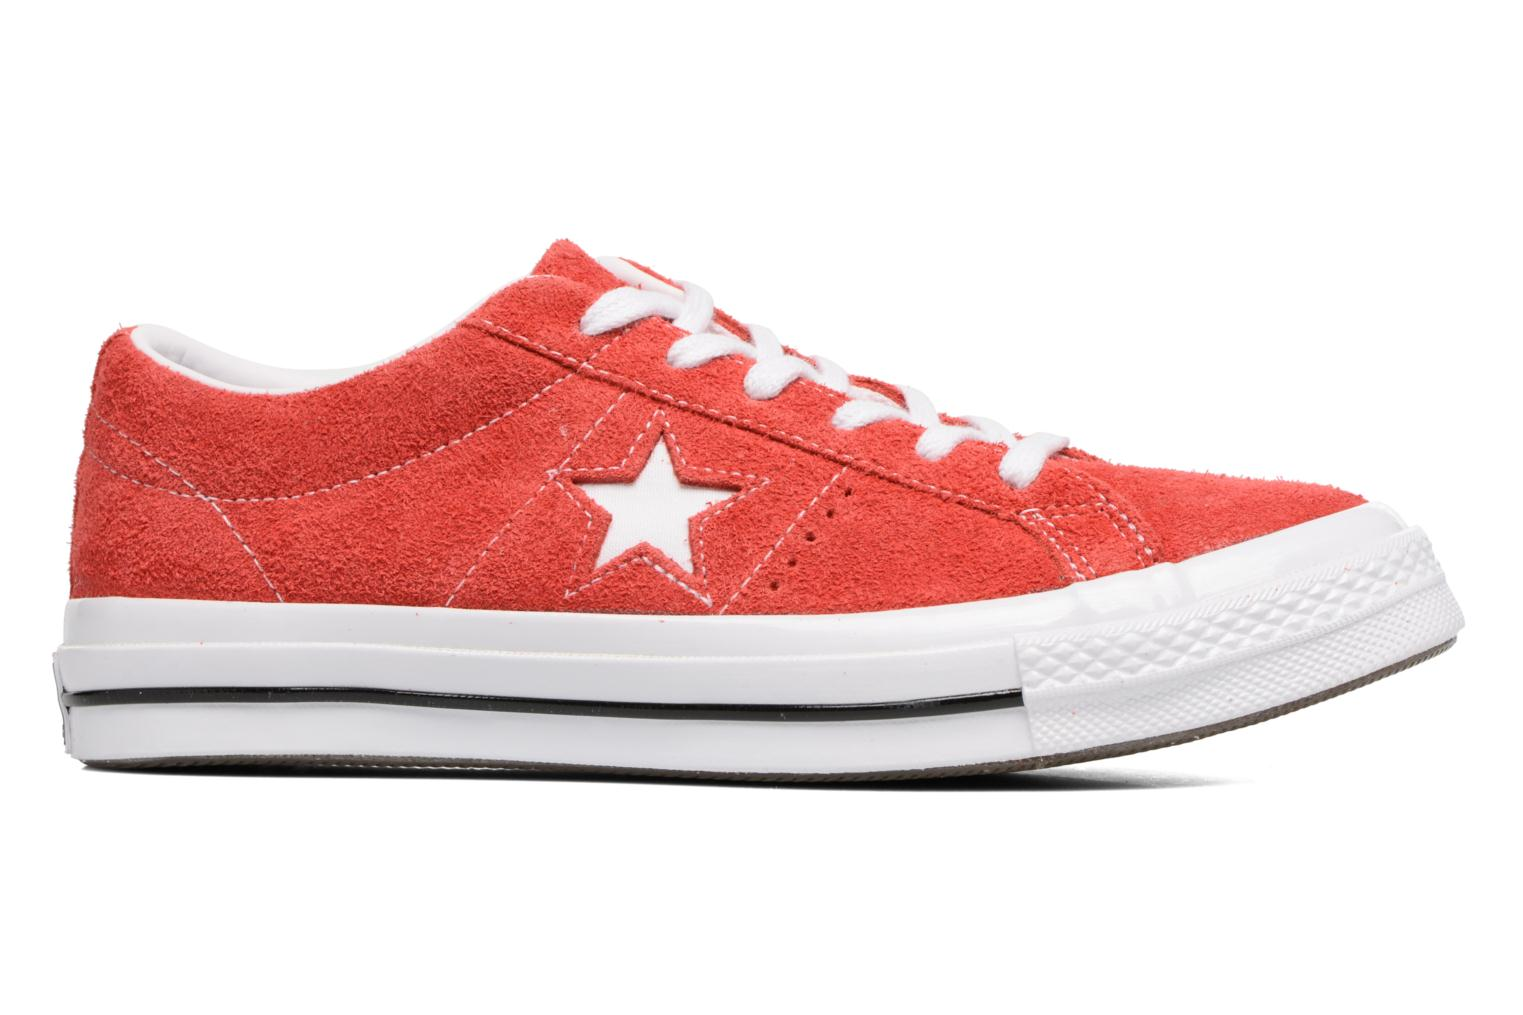 Baskets Converse One Star OG Suede Ox W Rouge vue derrière